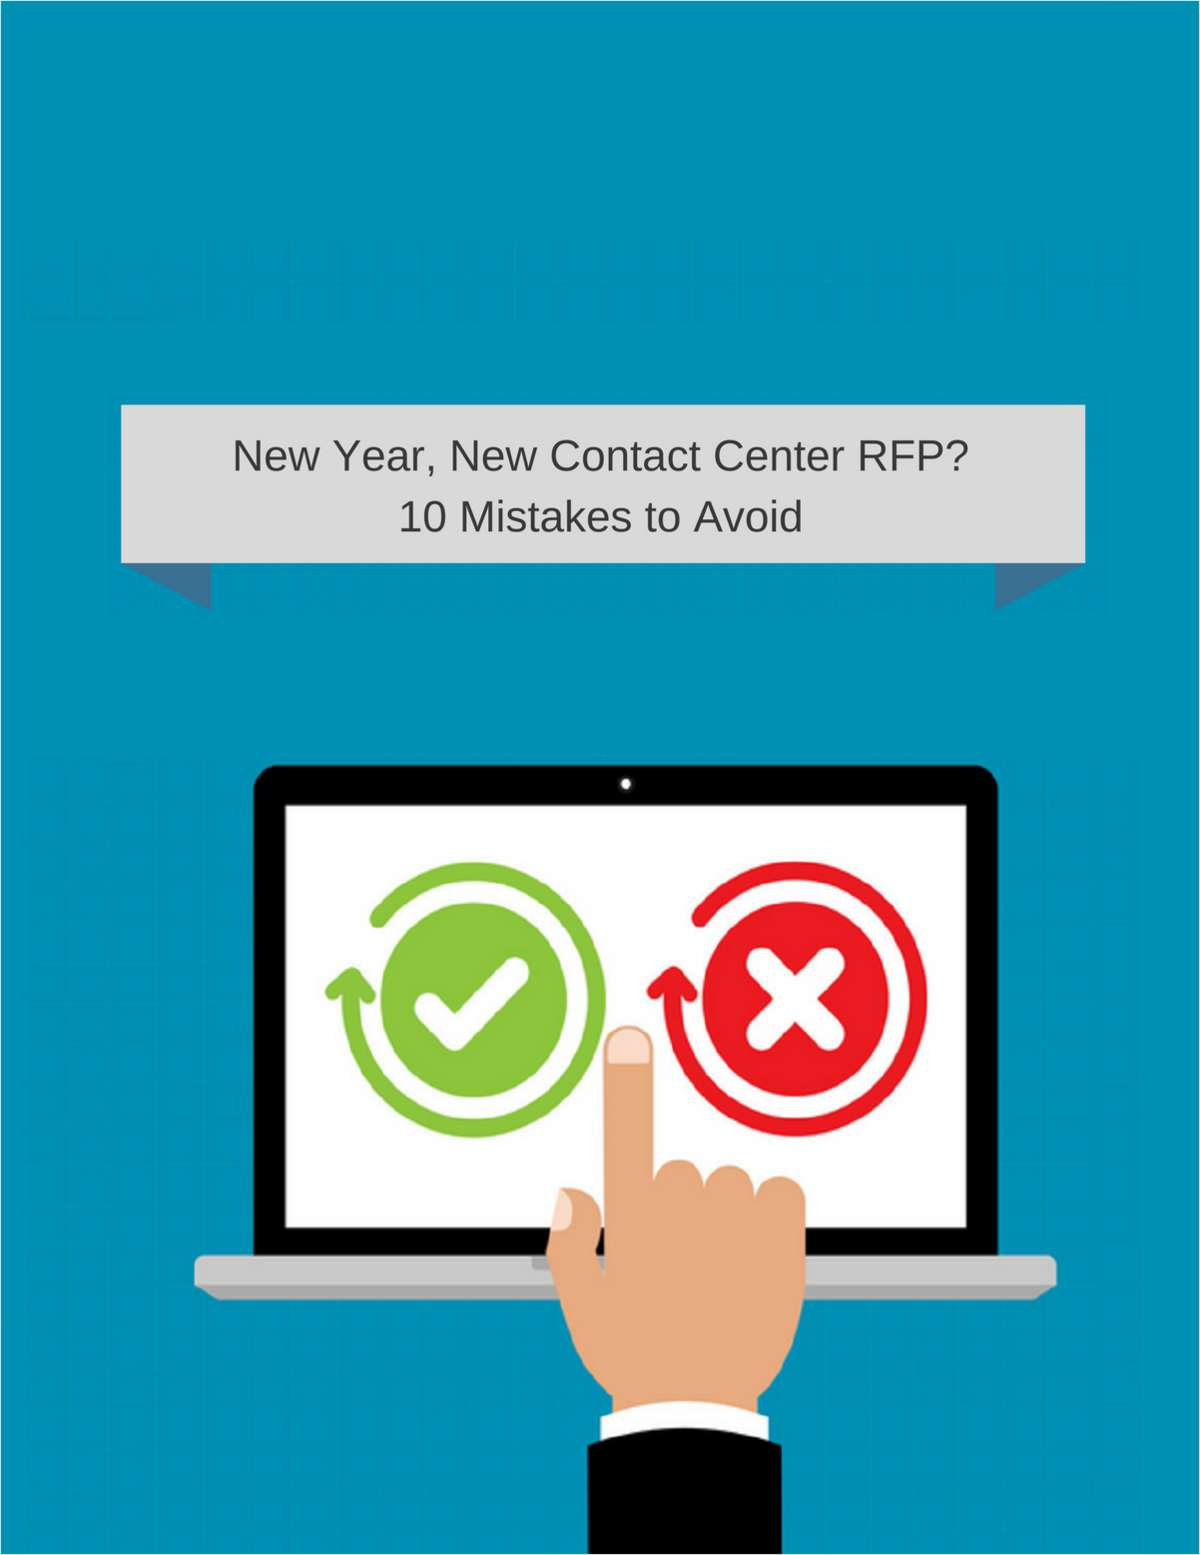 New Year, New Contact Center RFP? 10 Mistakes to Avoid